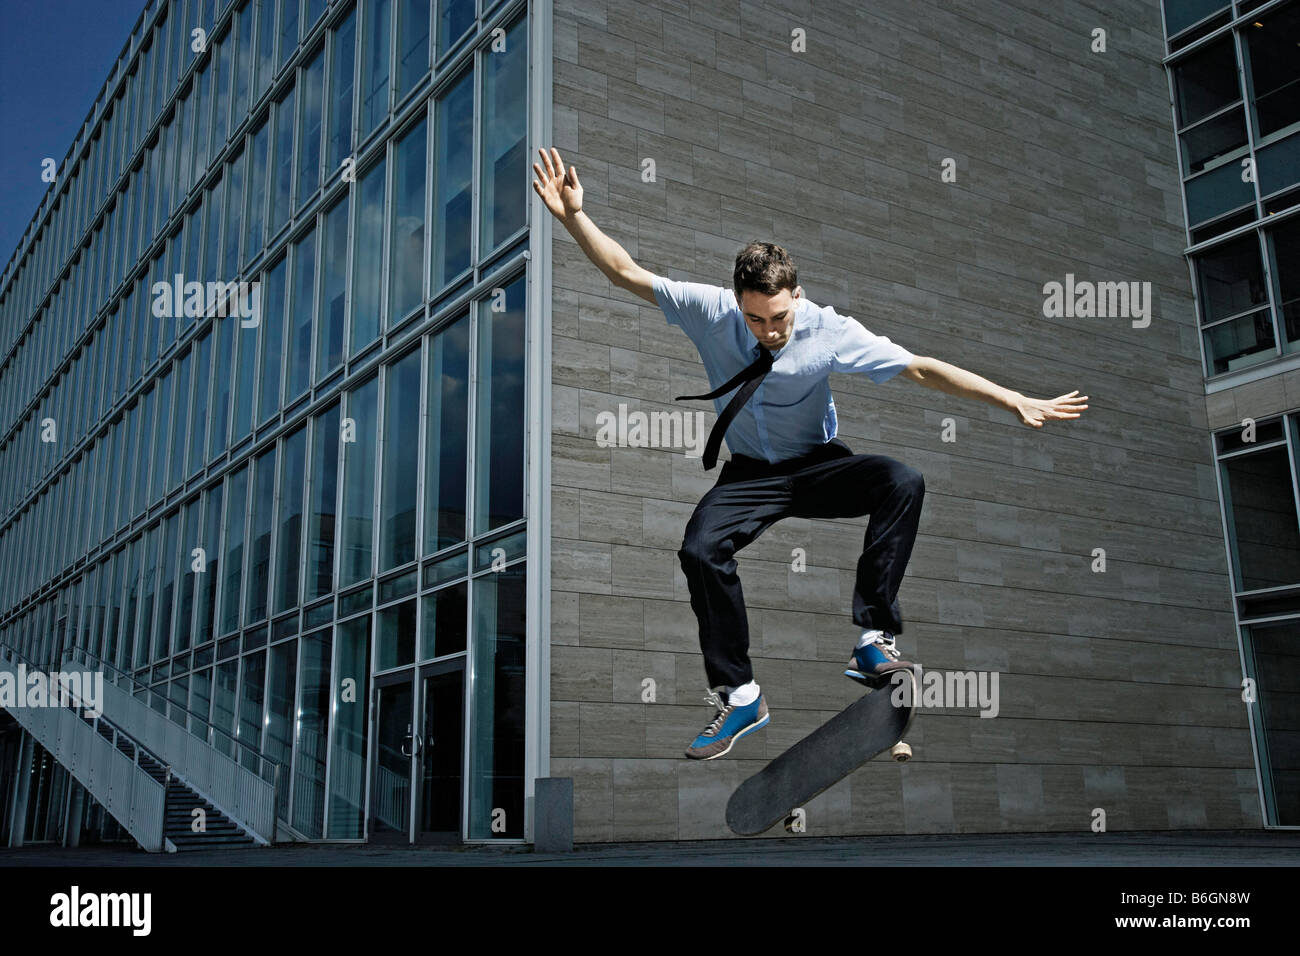 Skateboarder showing off his skills Stock Photo